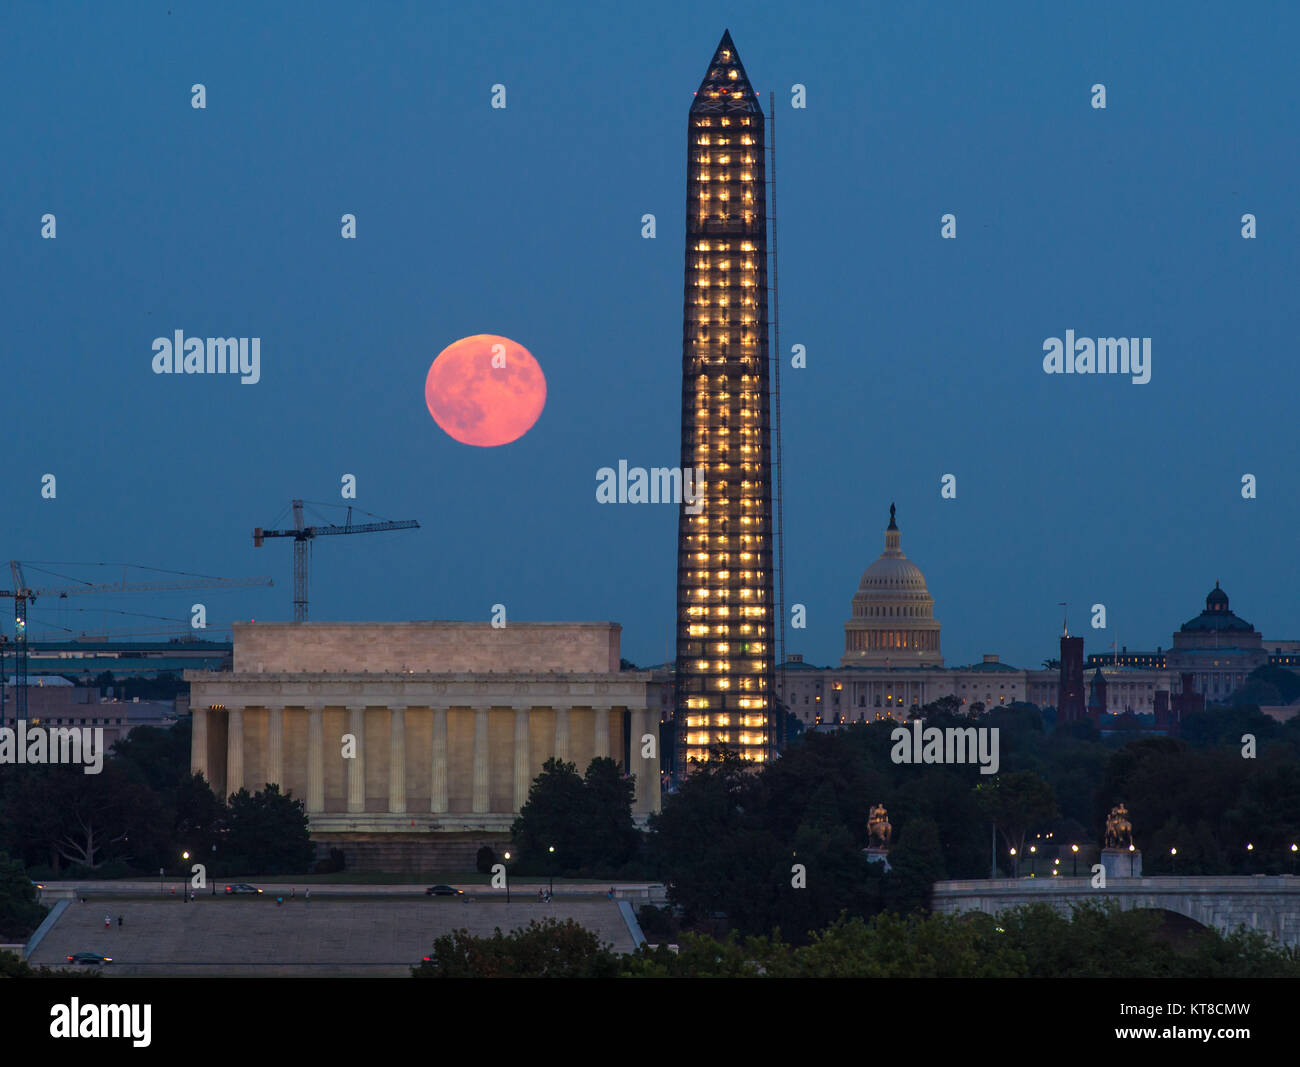 A full moon, known as a Harvest Moon, rises over Washington, Thursday, Sept. 19, 2013, in Washington. Photo Credit: - Stock Image